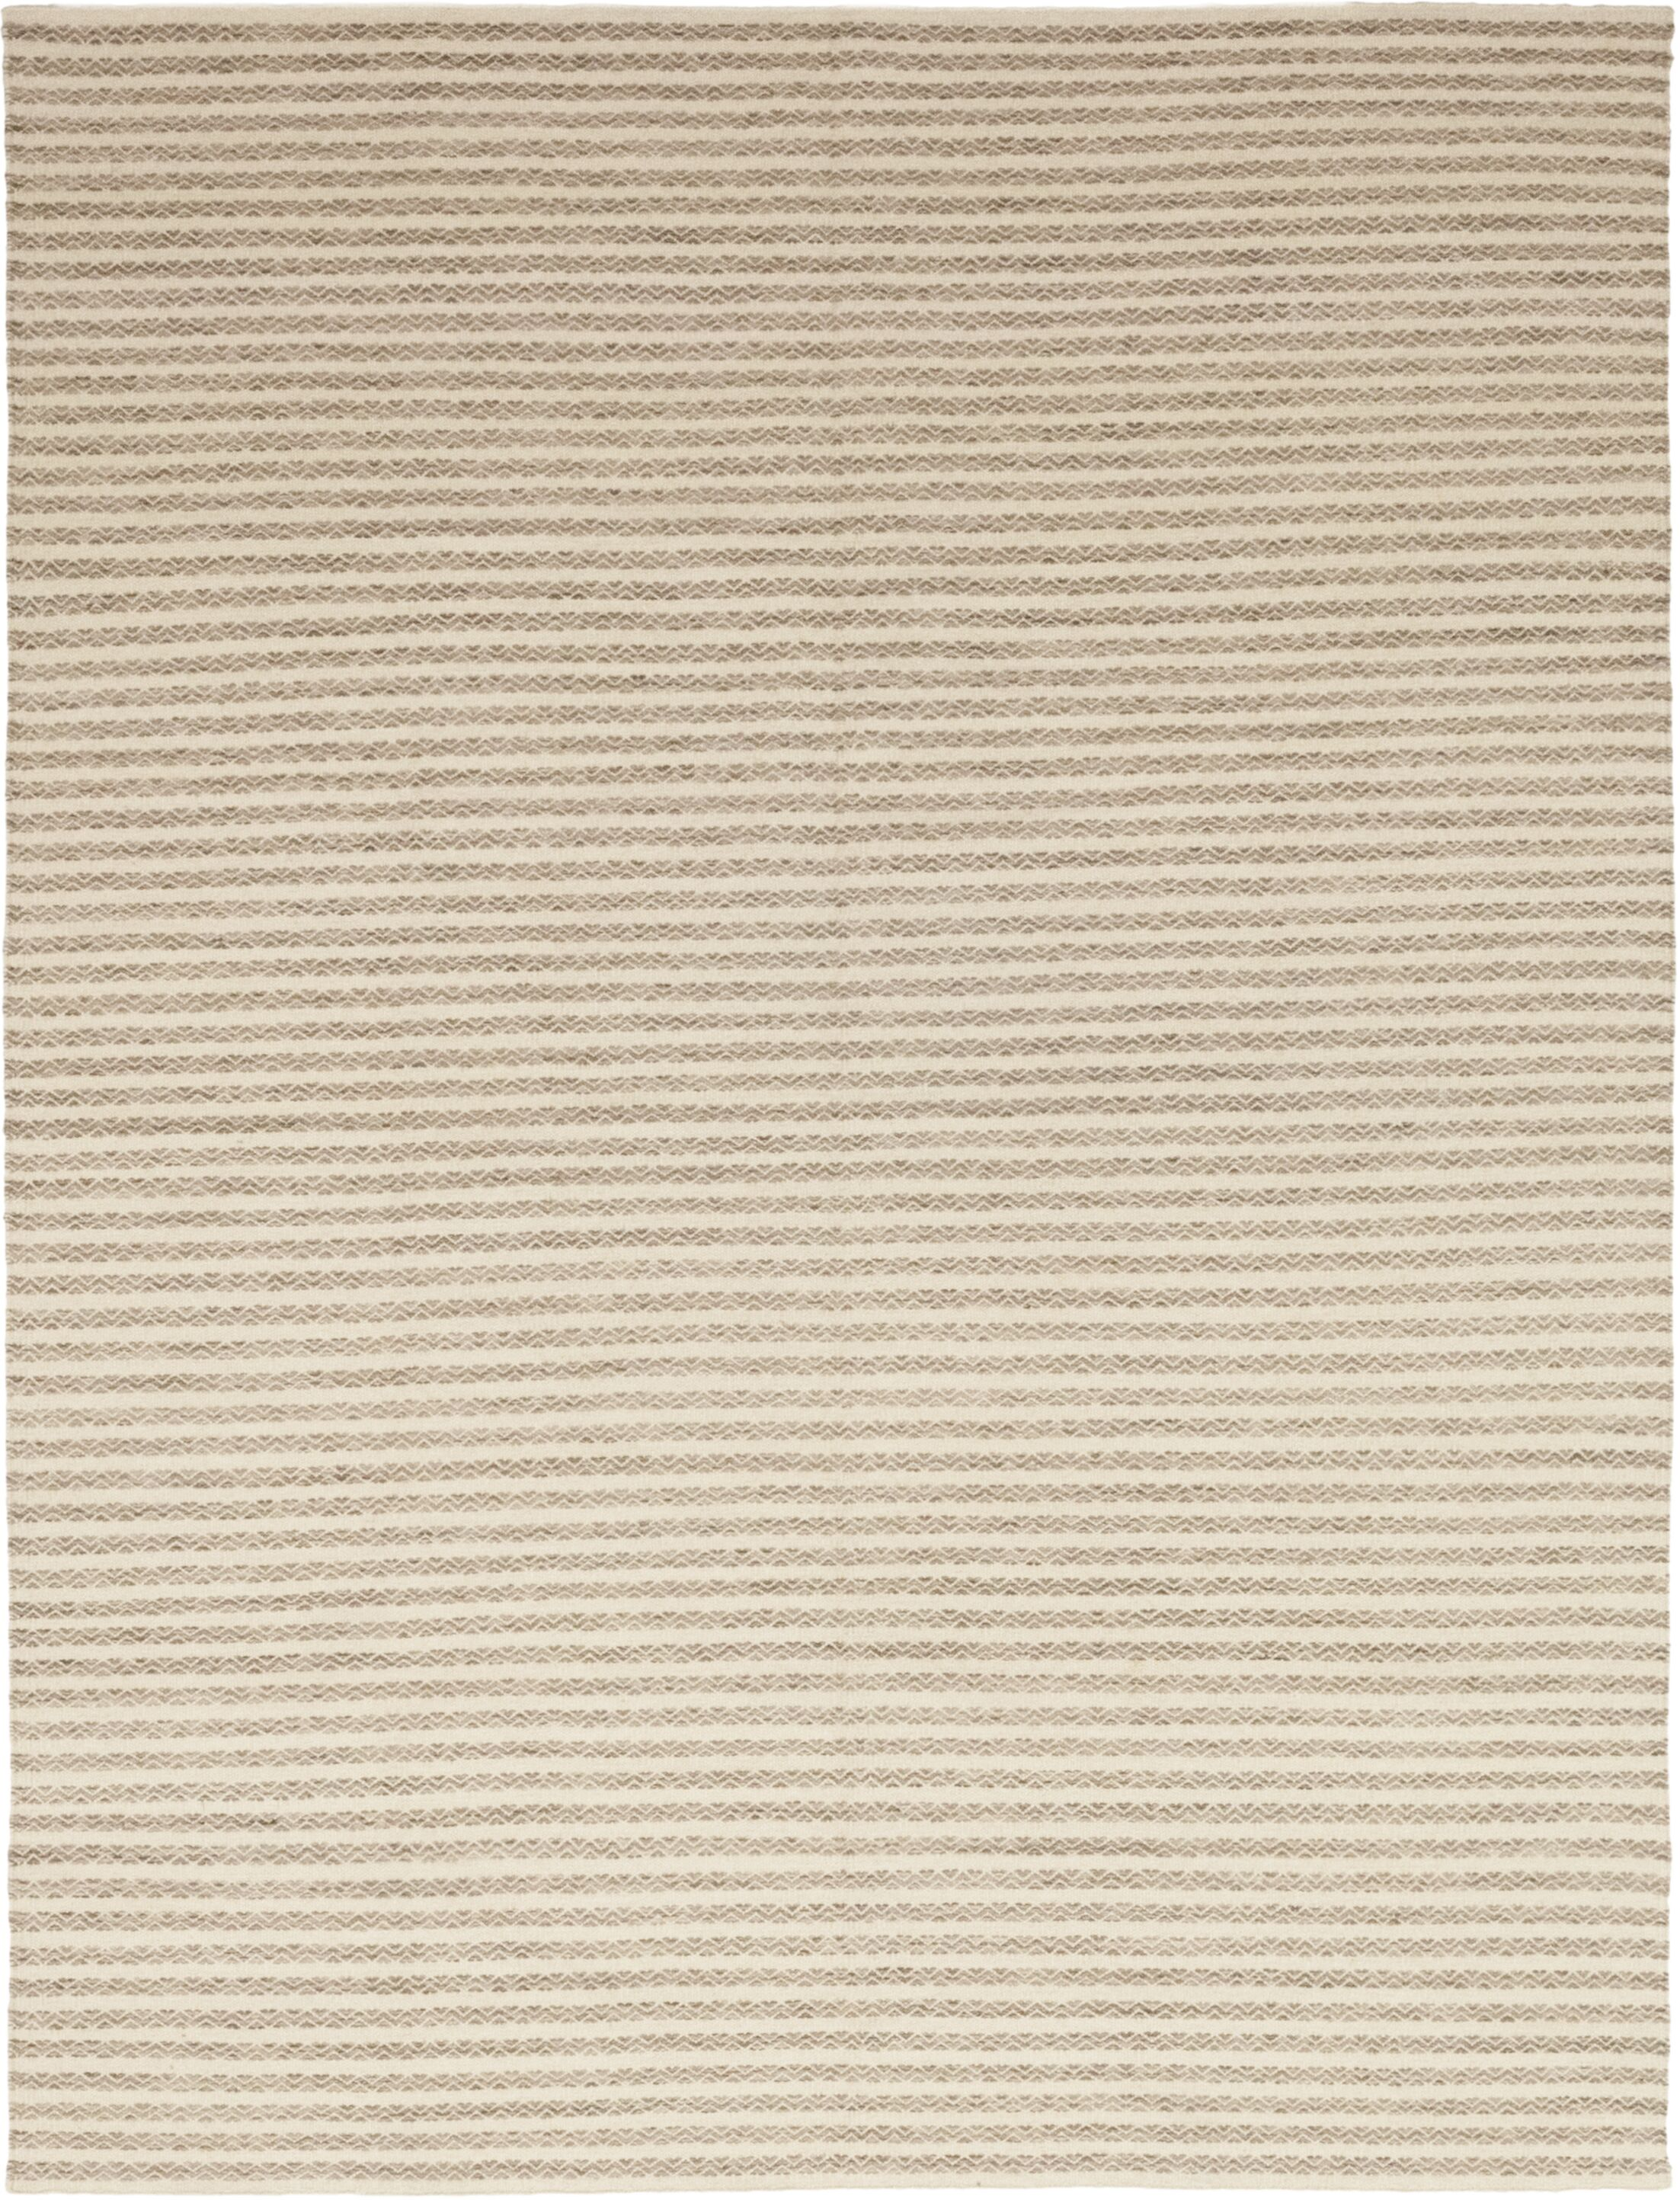 One-of-a-Kind Emrick Hand-Knotted Wool Beige Indoor Area Rug Rug Size: Rectangle 9'1